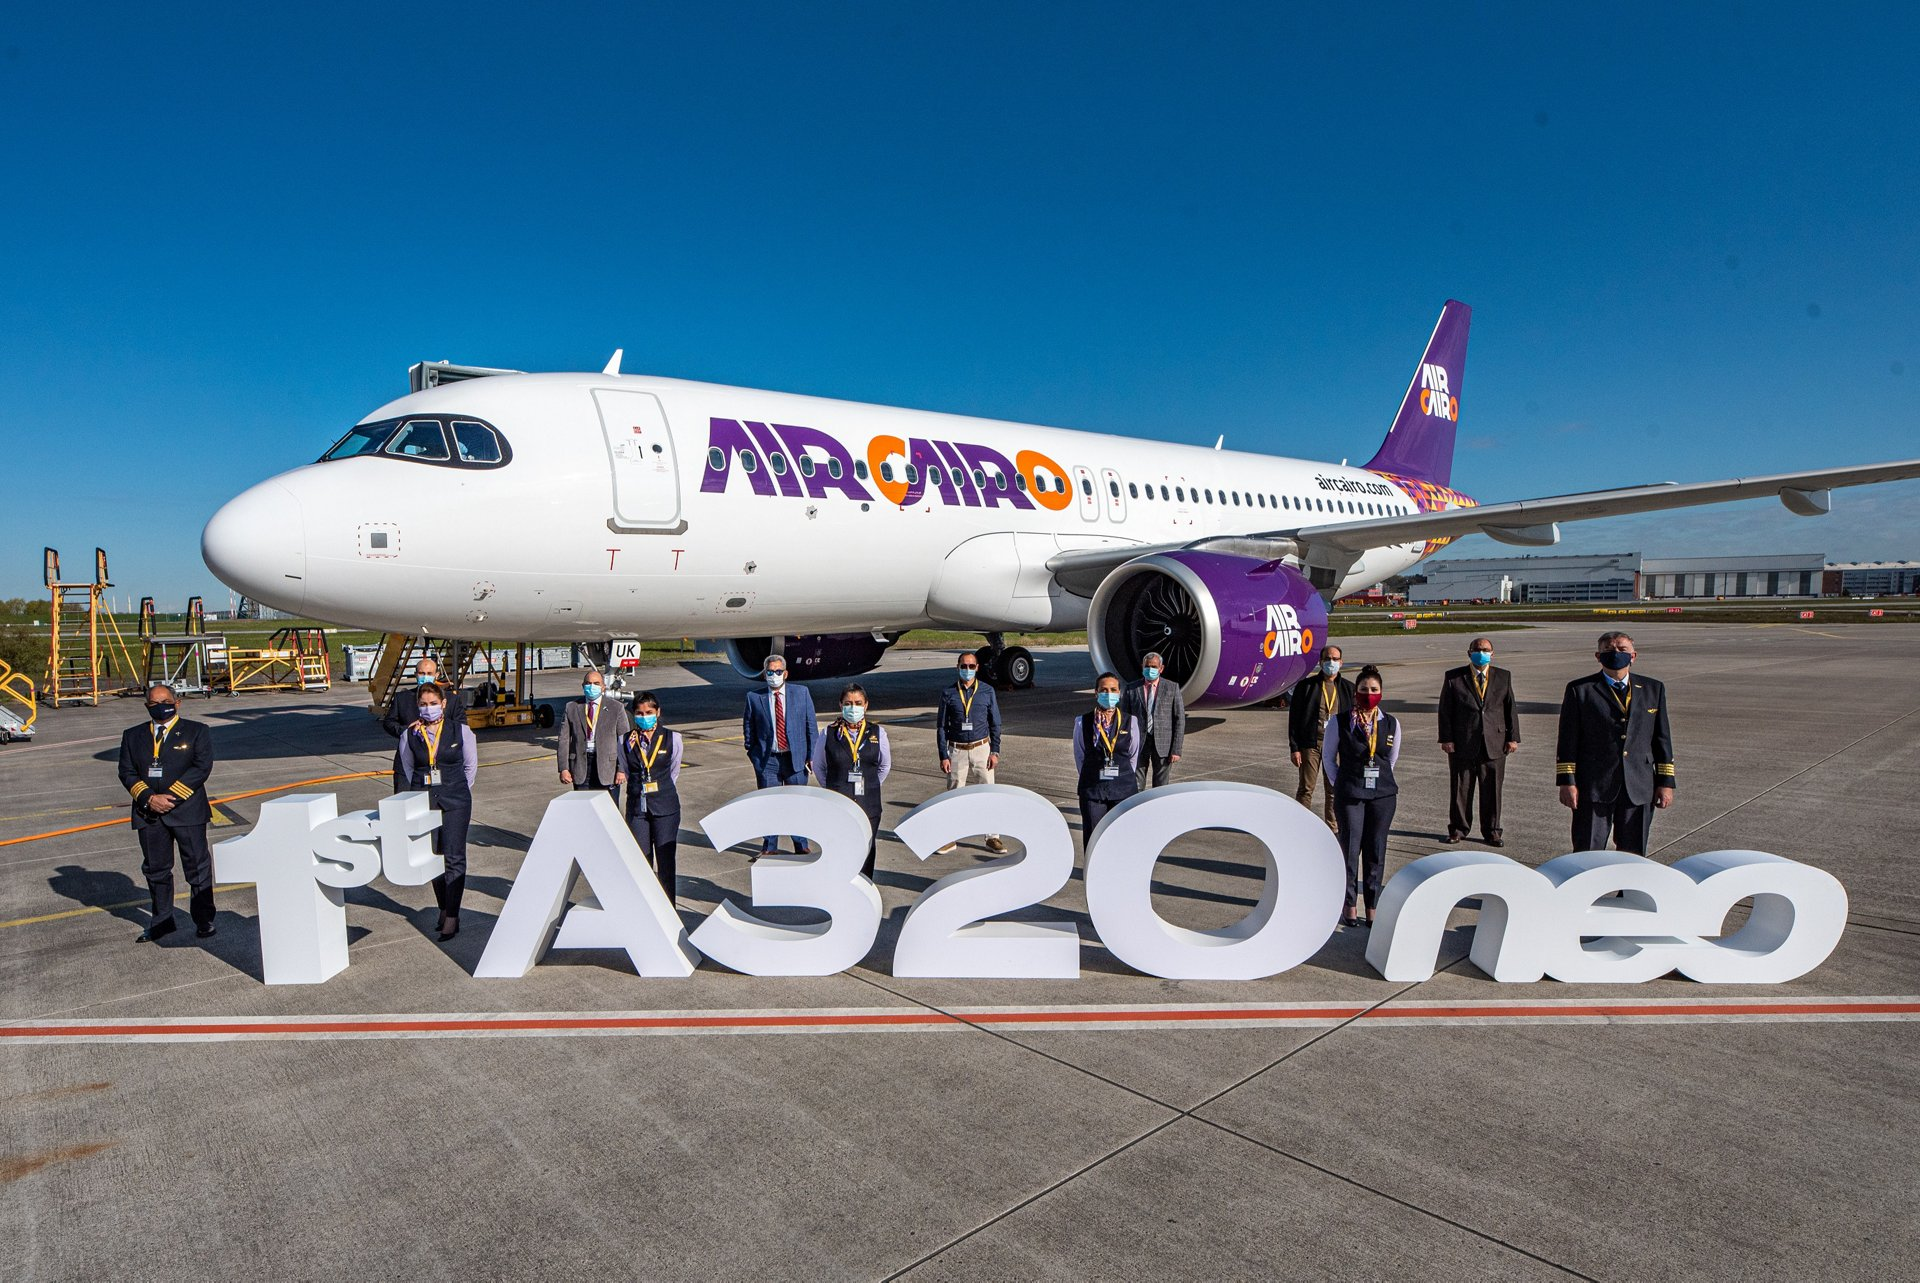 Air Cairo, Egypt's low-fare airline, has taken delivery of its first A320neo aircraft on lease from ICBC Leasing and equipped with CFM LEAP-1A engines.